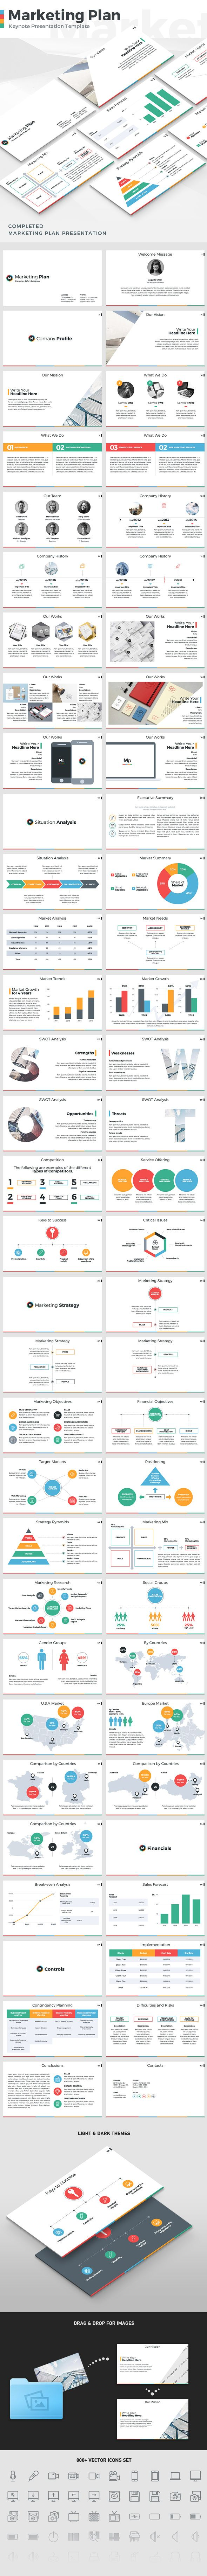 Marketing Plan Keynote Presentation Template #1920x1080 #manual • Download ➝ https://graphicriver.net/item/marketing-plan-keynote-presentation-template/18564748?ref=pxcr